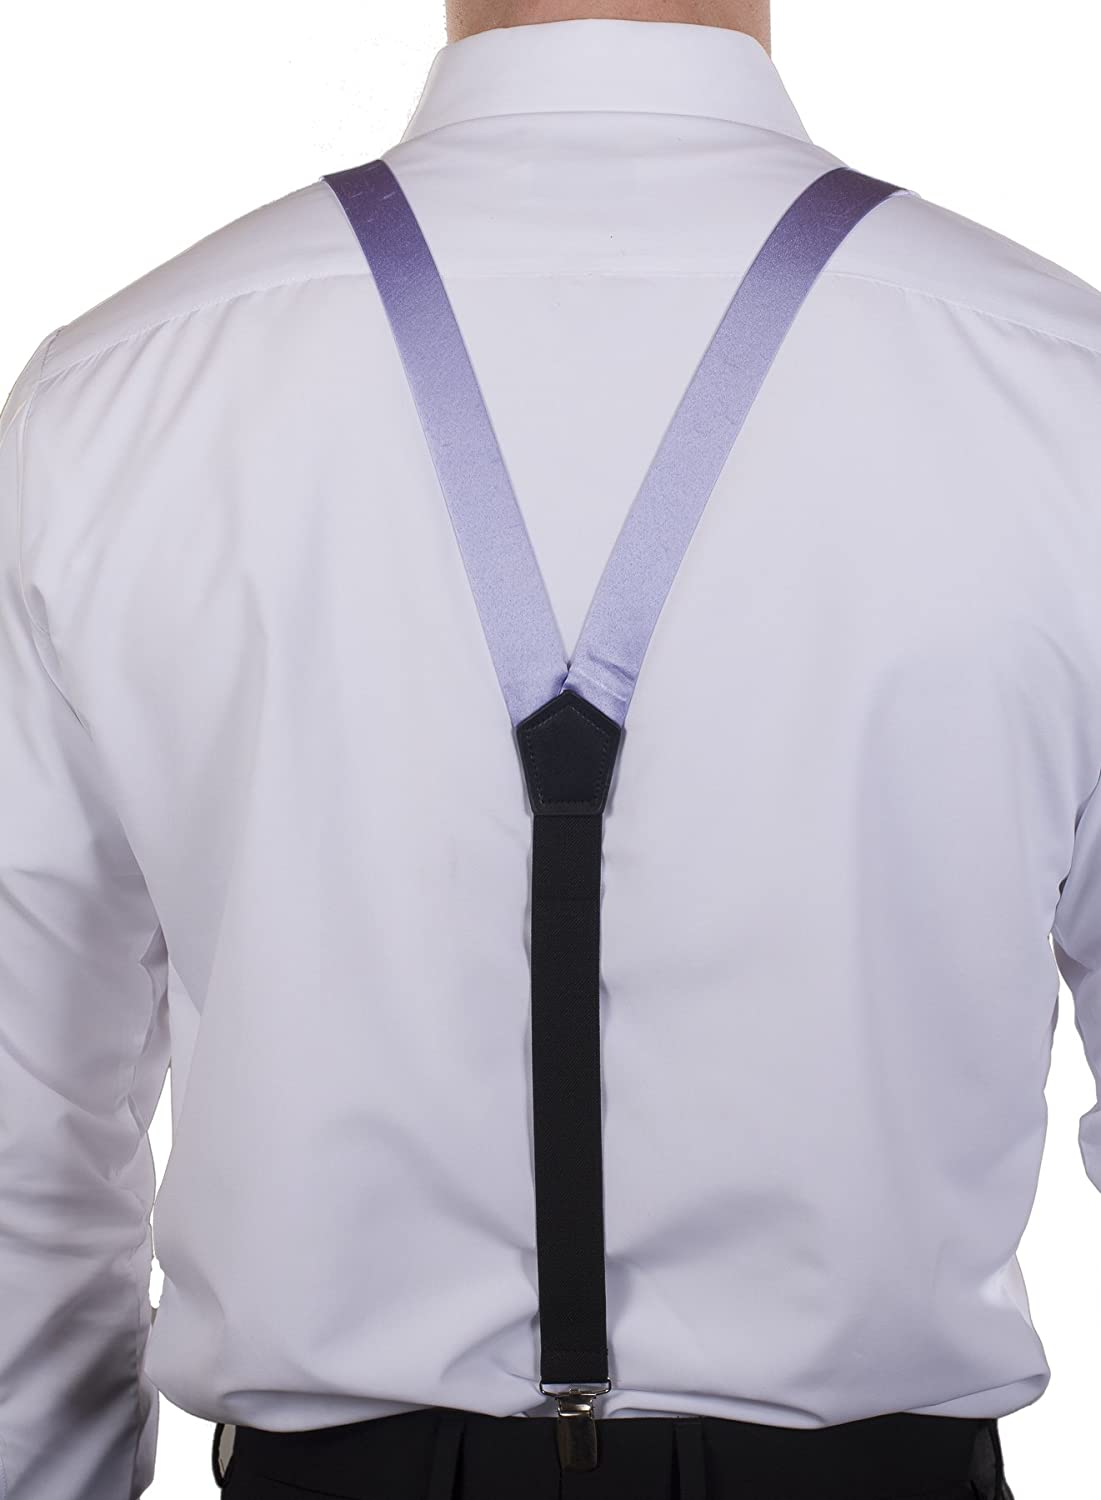 Tuxgear Mens Satin Suspender and Bow Tie Set Combo in Men/'s and Kids Sizes